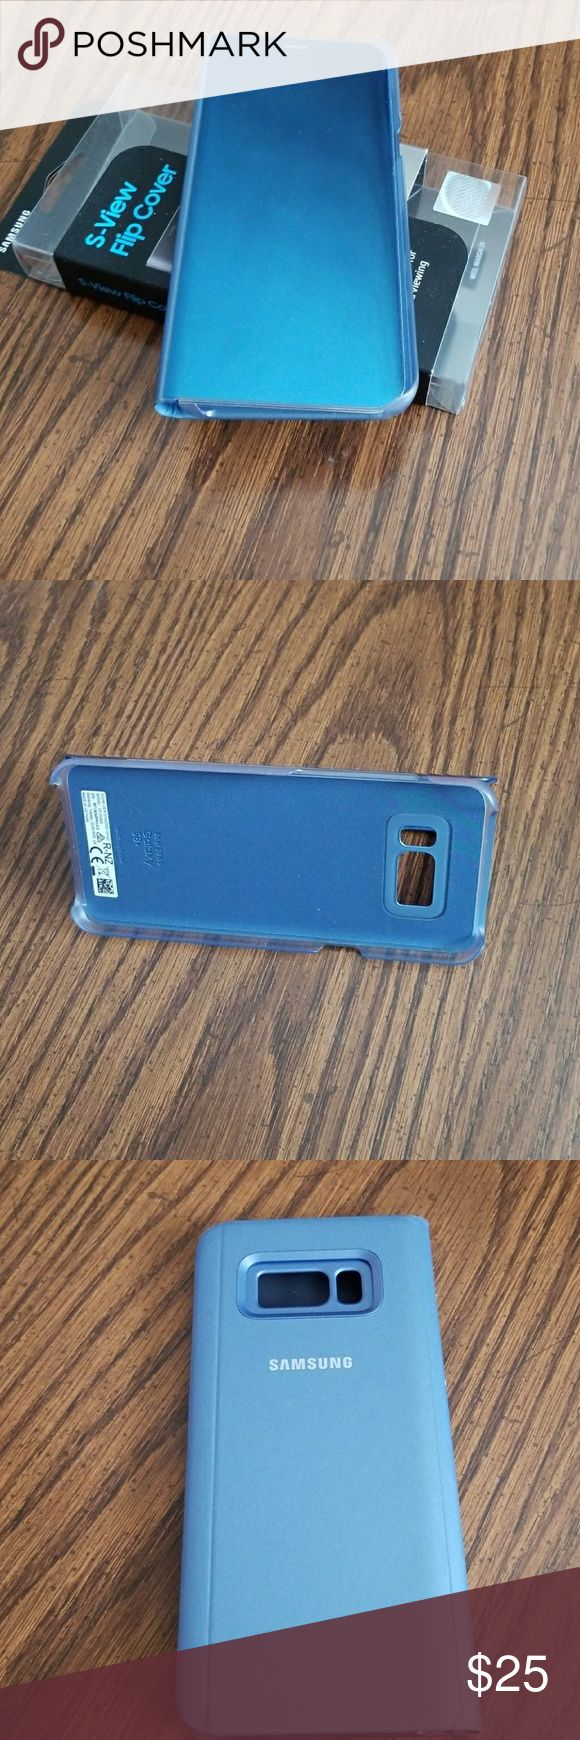 Samsung S8 Plus Flip Cover Case Flip cover built in kickstand for easy media viewing. Instant full screen access when cover is closed. Other